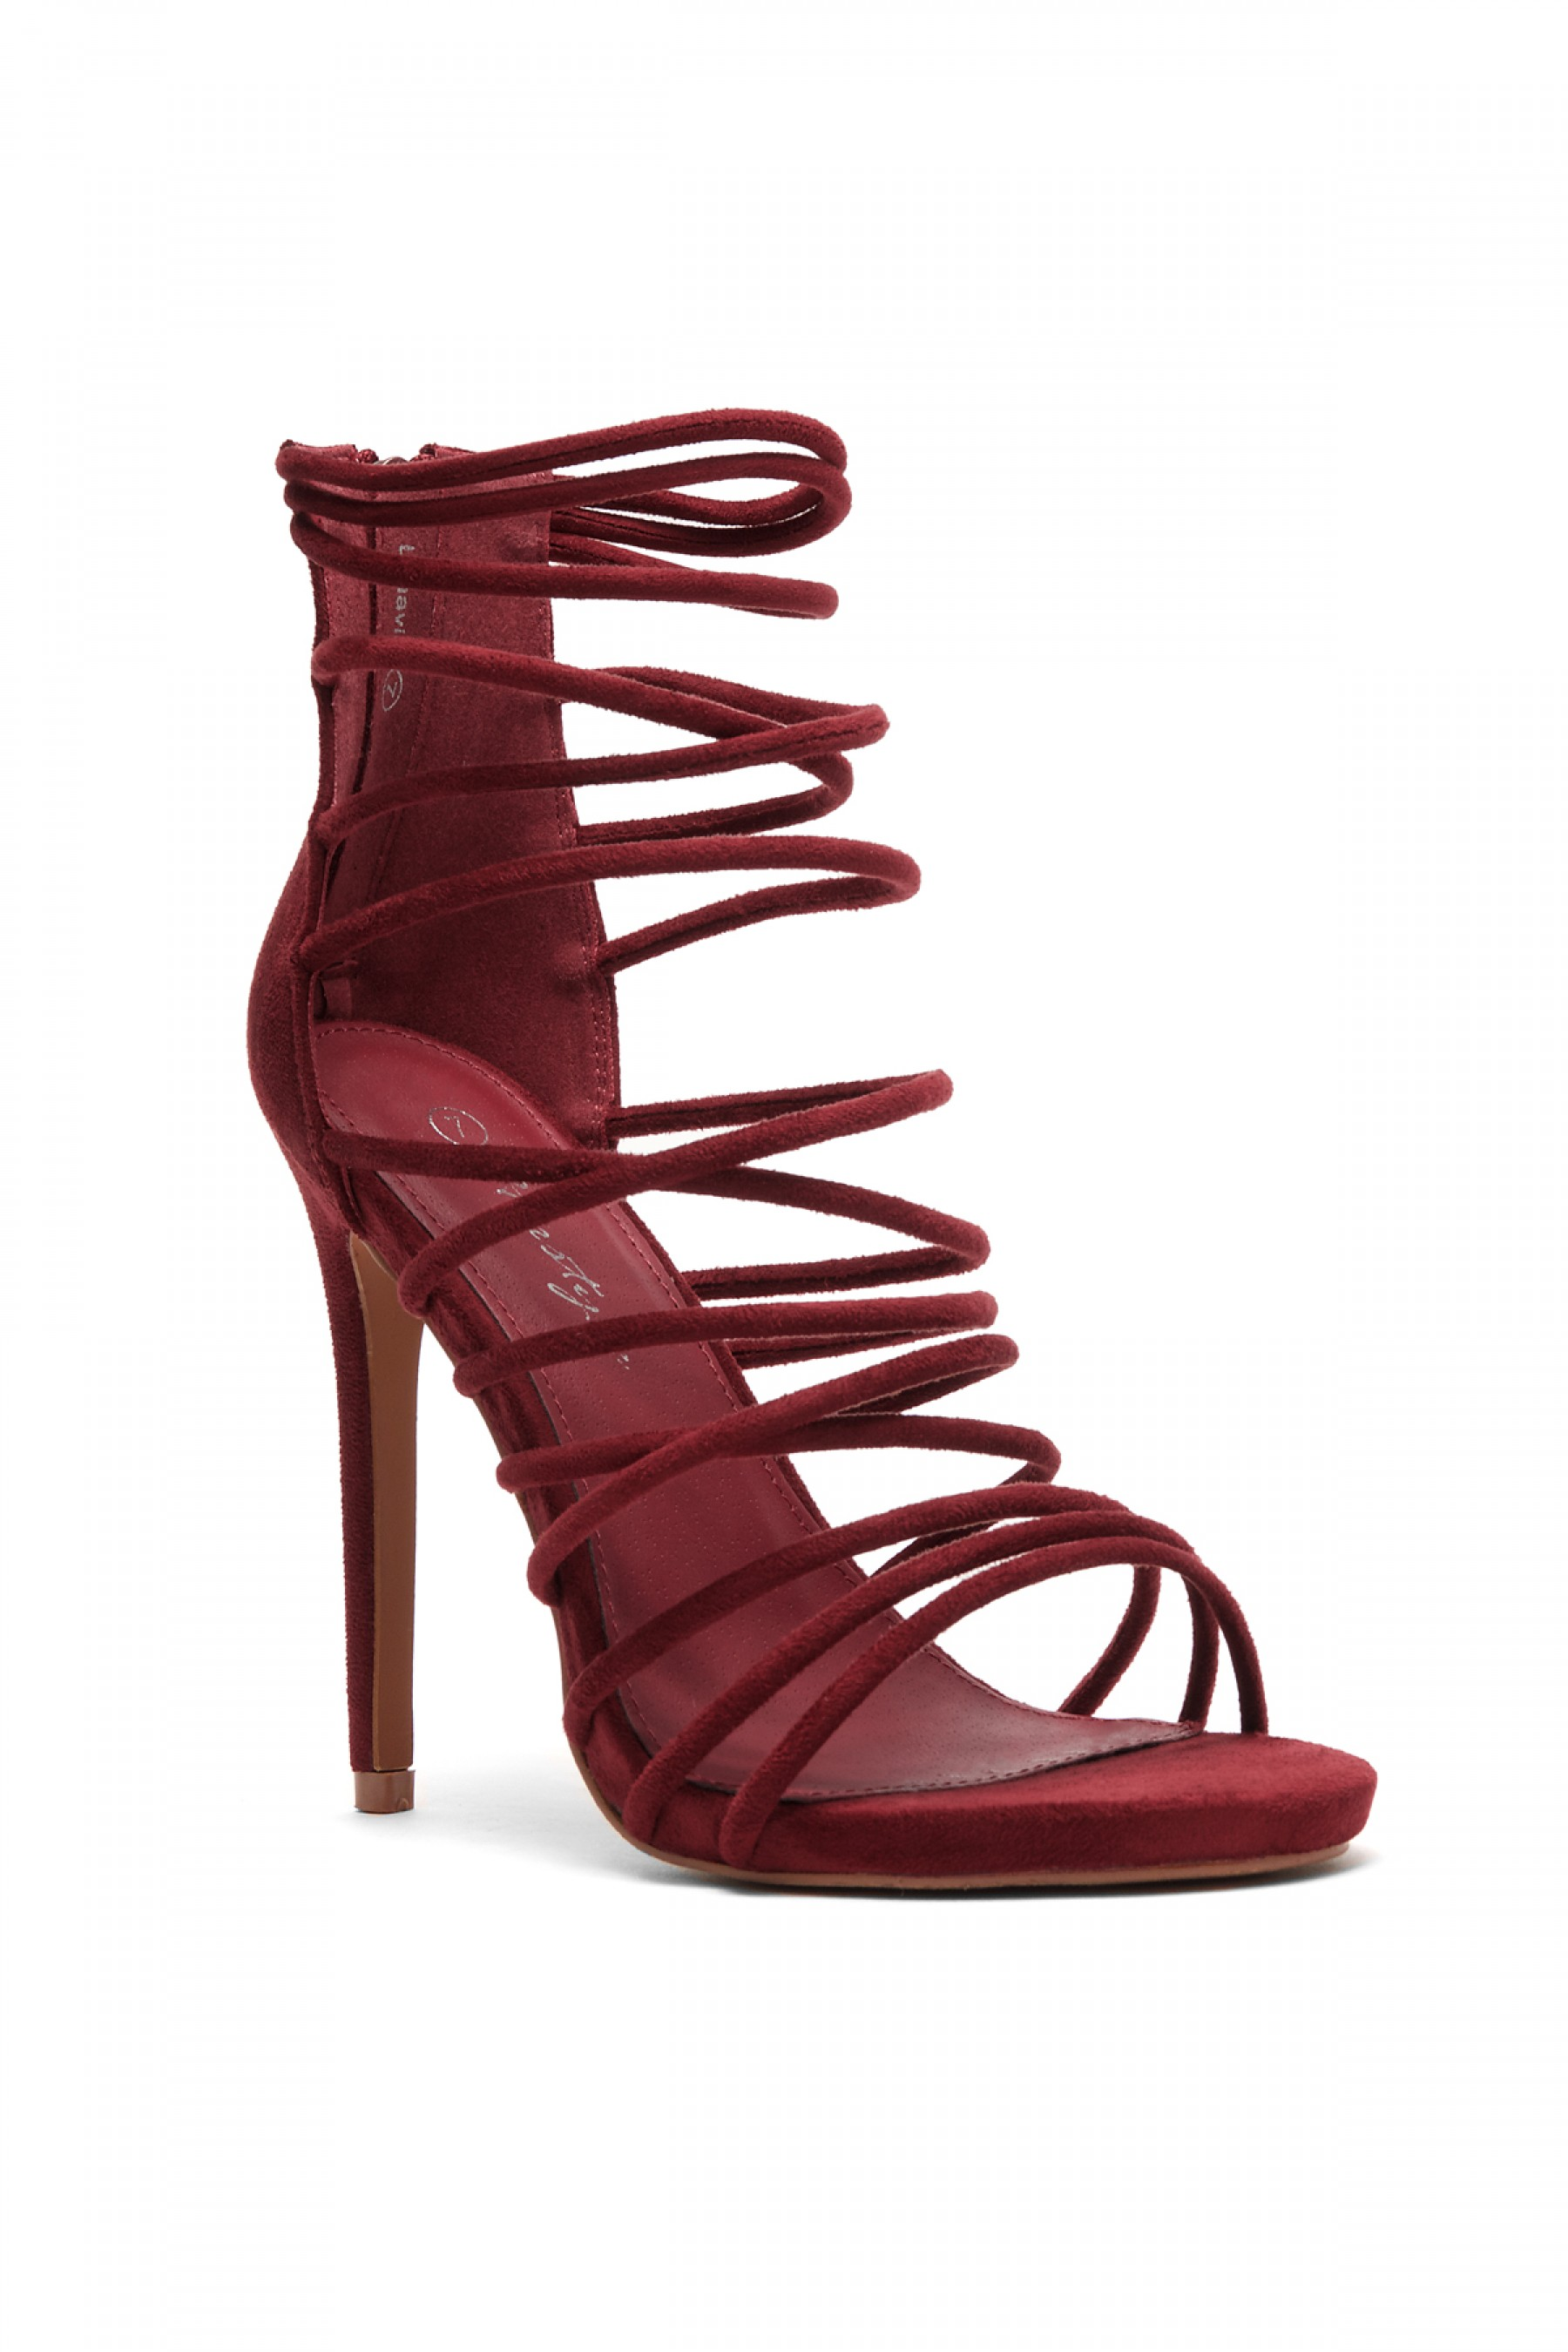 Women's Lenavia: Stiletto heel, strappy, peep toe - Burgundy